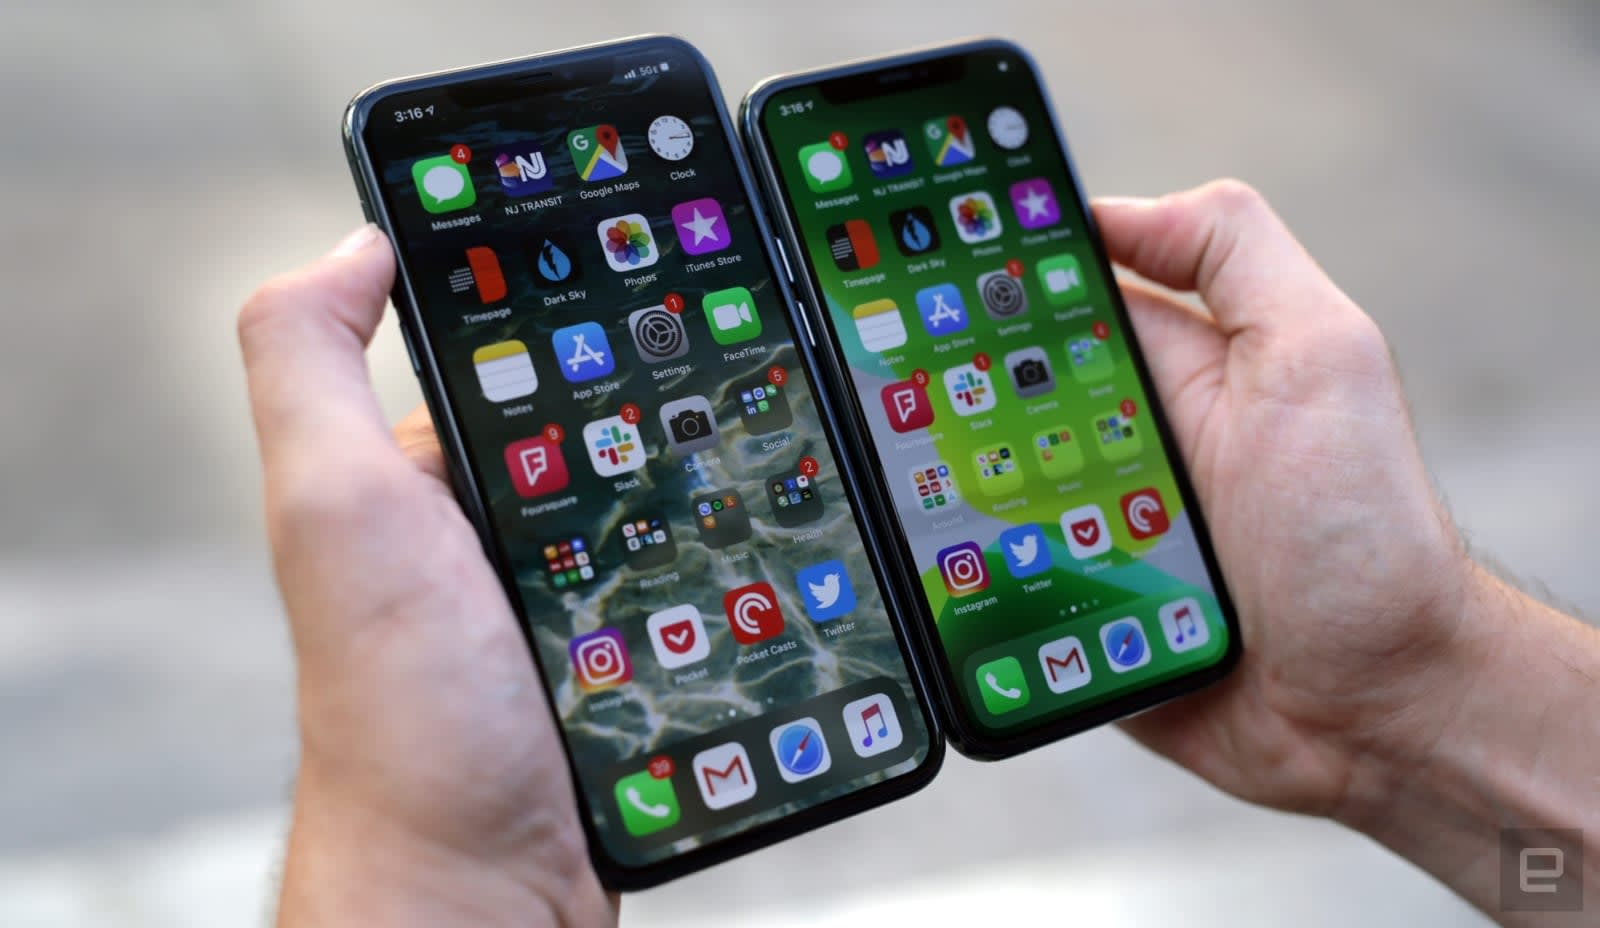 Users complain iOS 13.2 is too aggressive in killing background apps